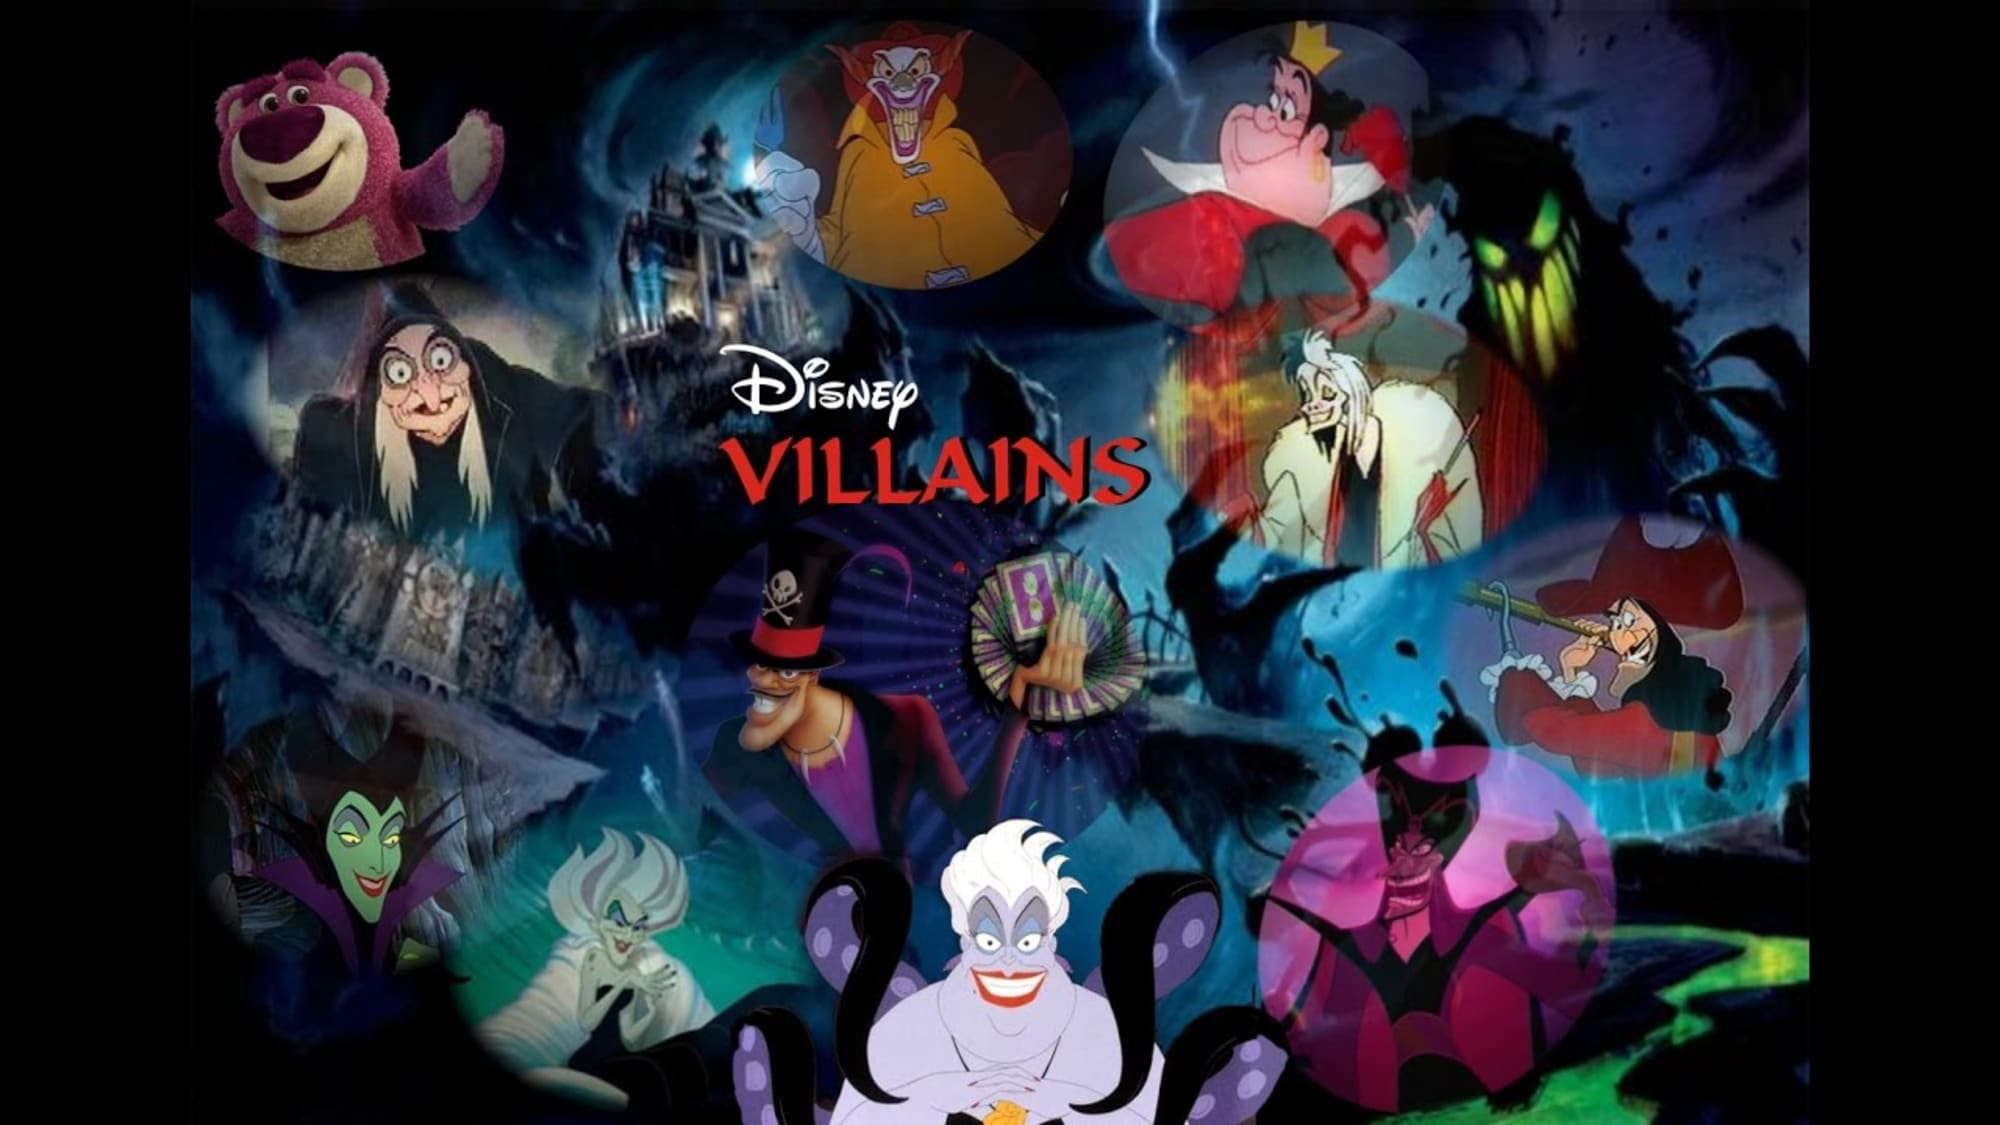 The 5 Scariest Disney Villains Of All Time Ranked Who S The Scariest